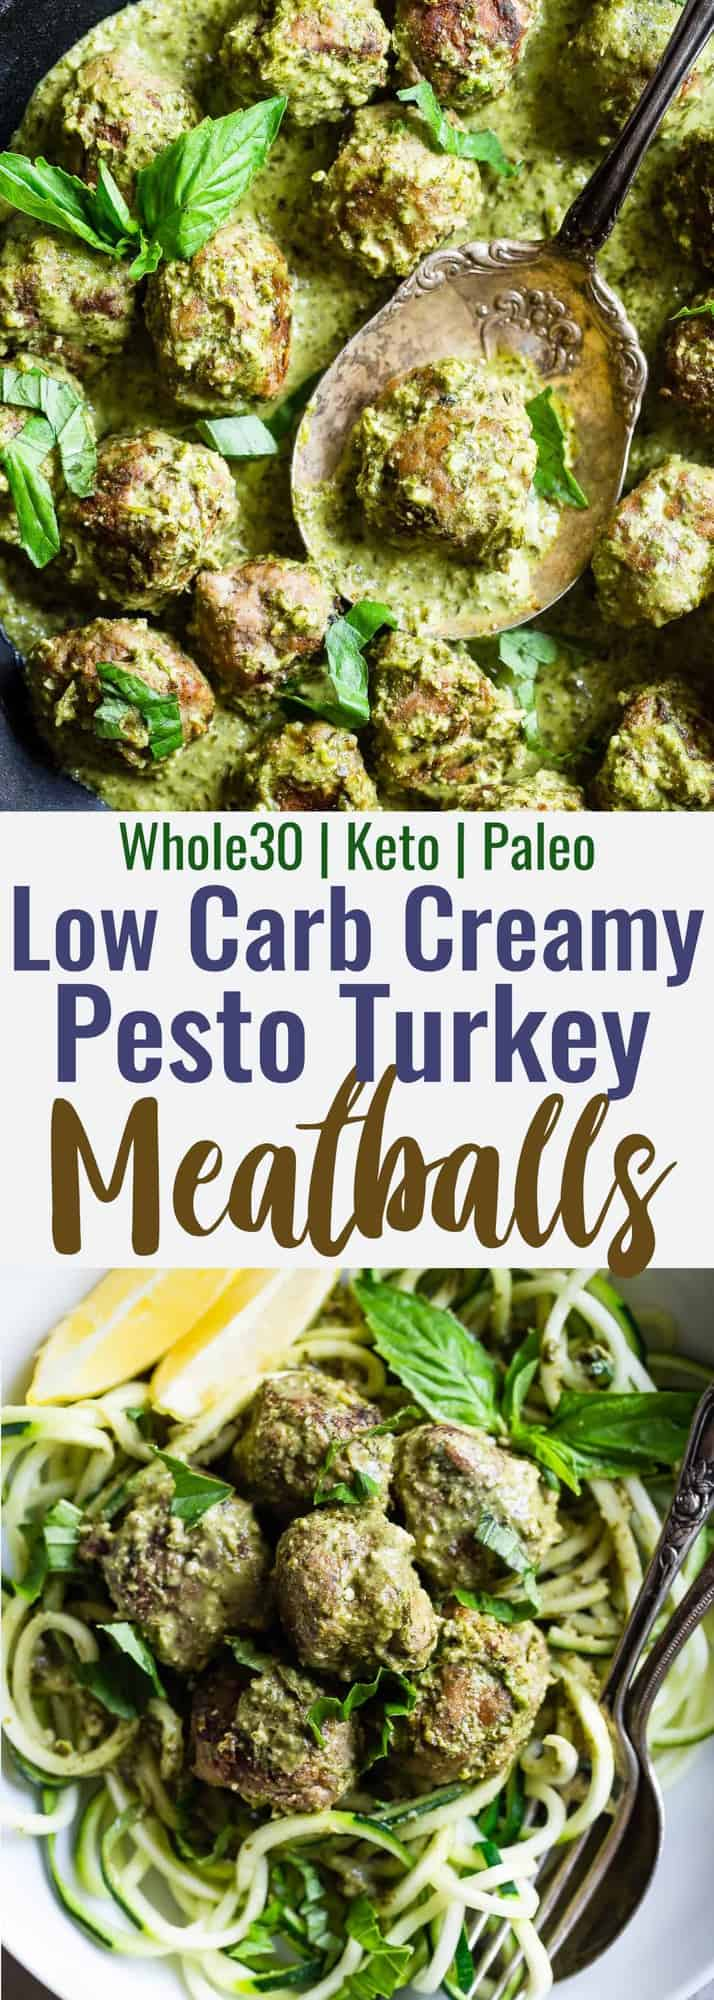 Low Carb Whole30 Turkey Meatballs with Pesto Cream Sauce - These healthy turkey meatballs are simmered in a coconut milk basil pesto cream sauce for an easy, weeknight meal that is keto and paleo friendly and so tasty! | #Foodfaithfitness | #Paleo #Whole30 #Lowcarb #Keto #Healthy